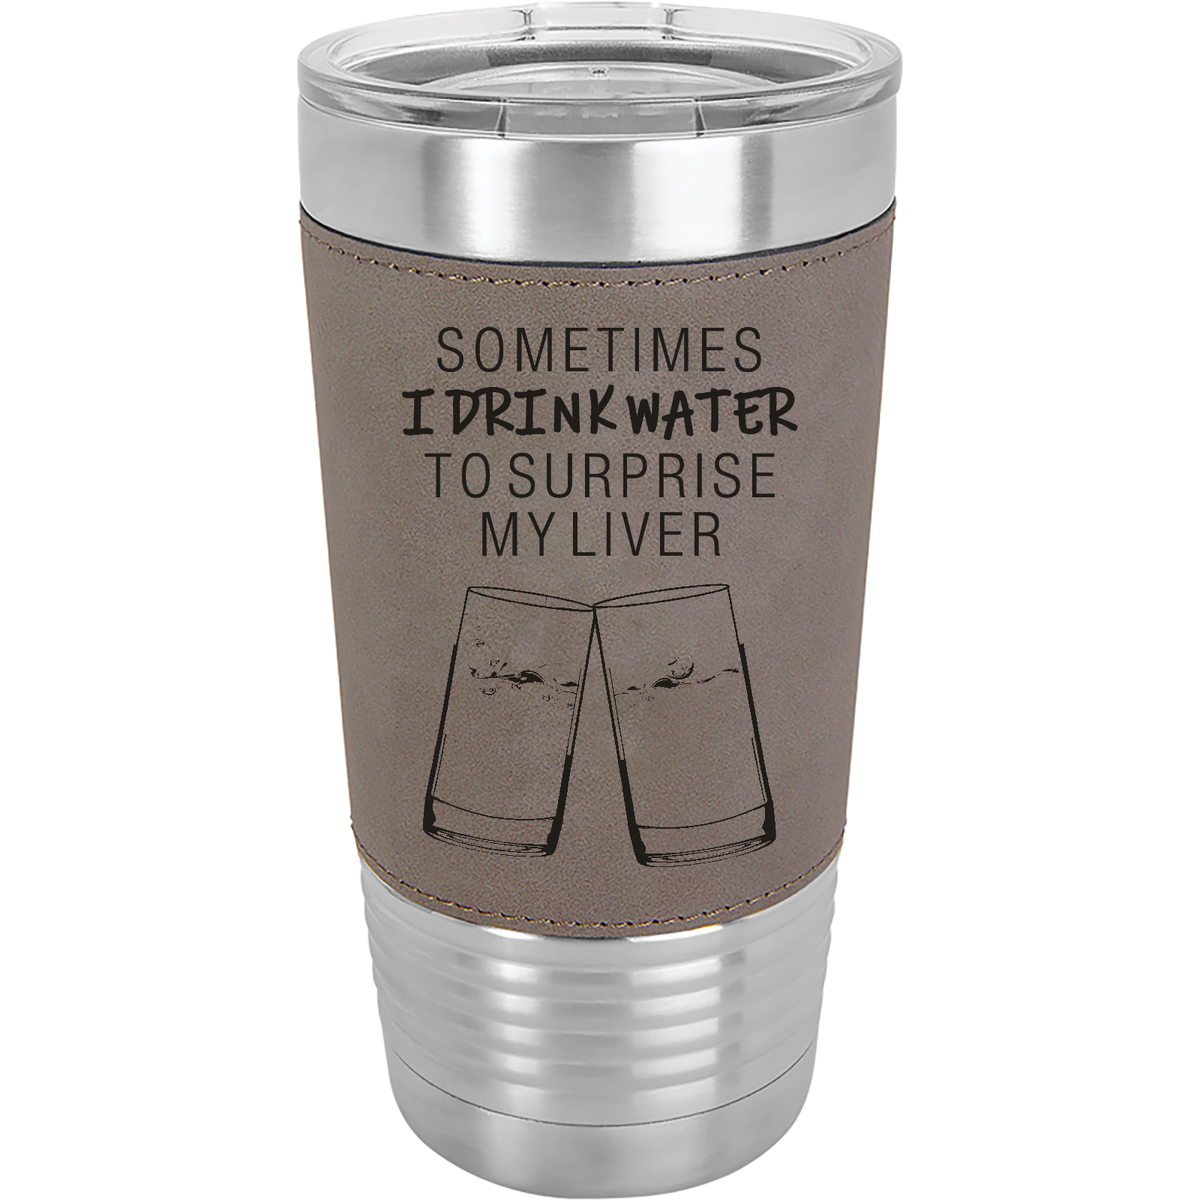 Sometime I drink water to surprise my liver - 20oz. Leatherette Tumber with Clear Lid